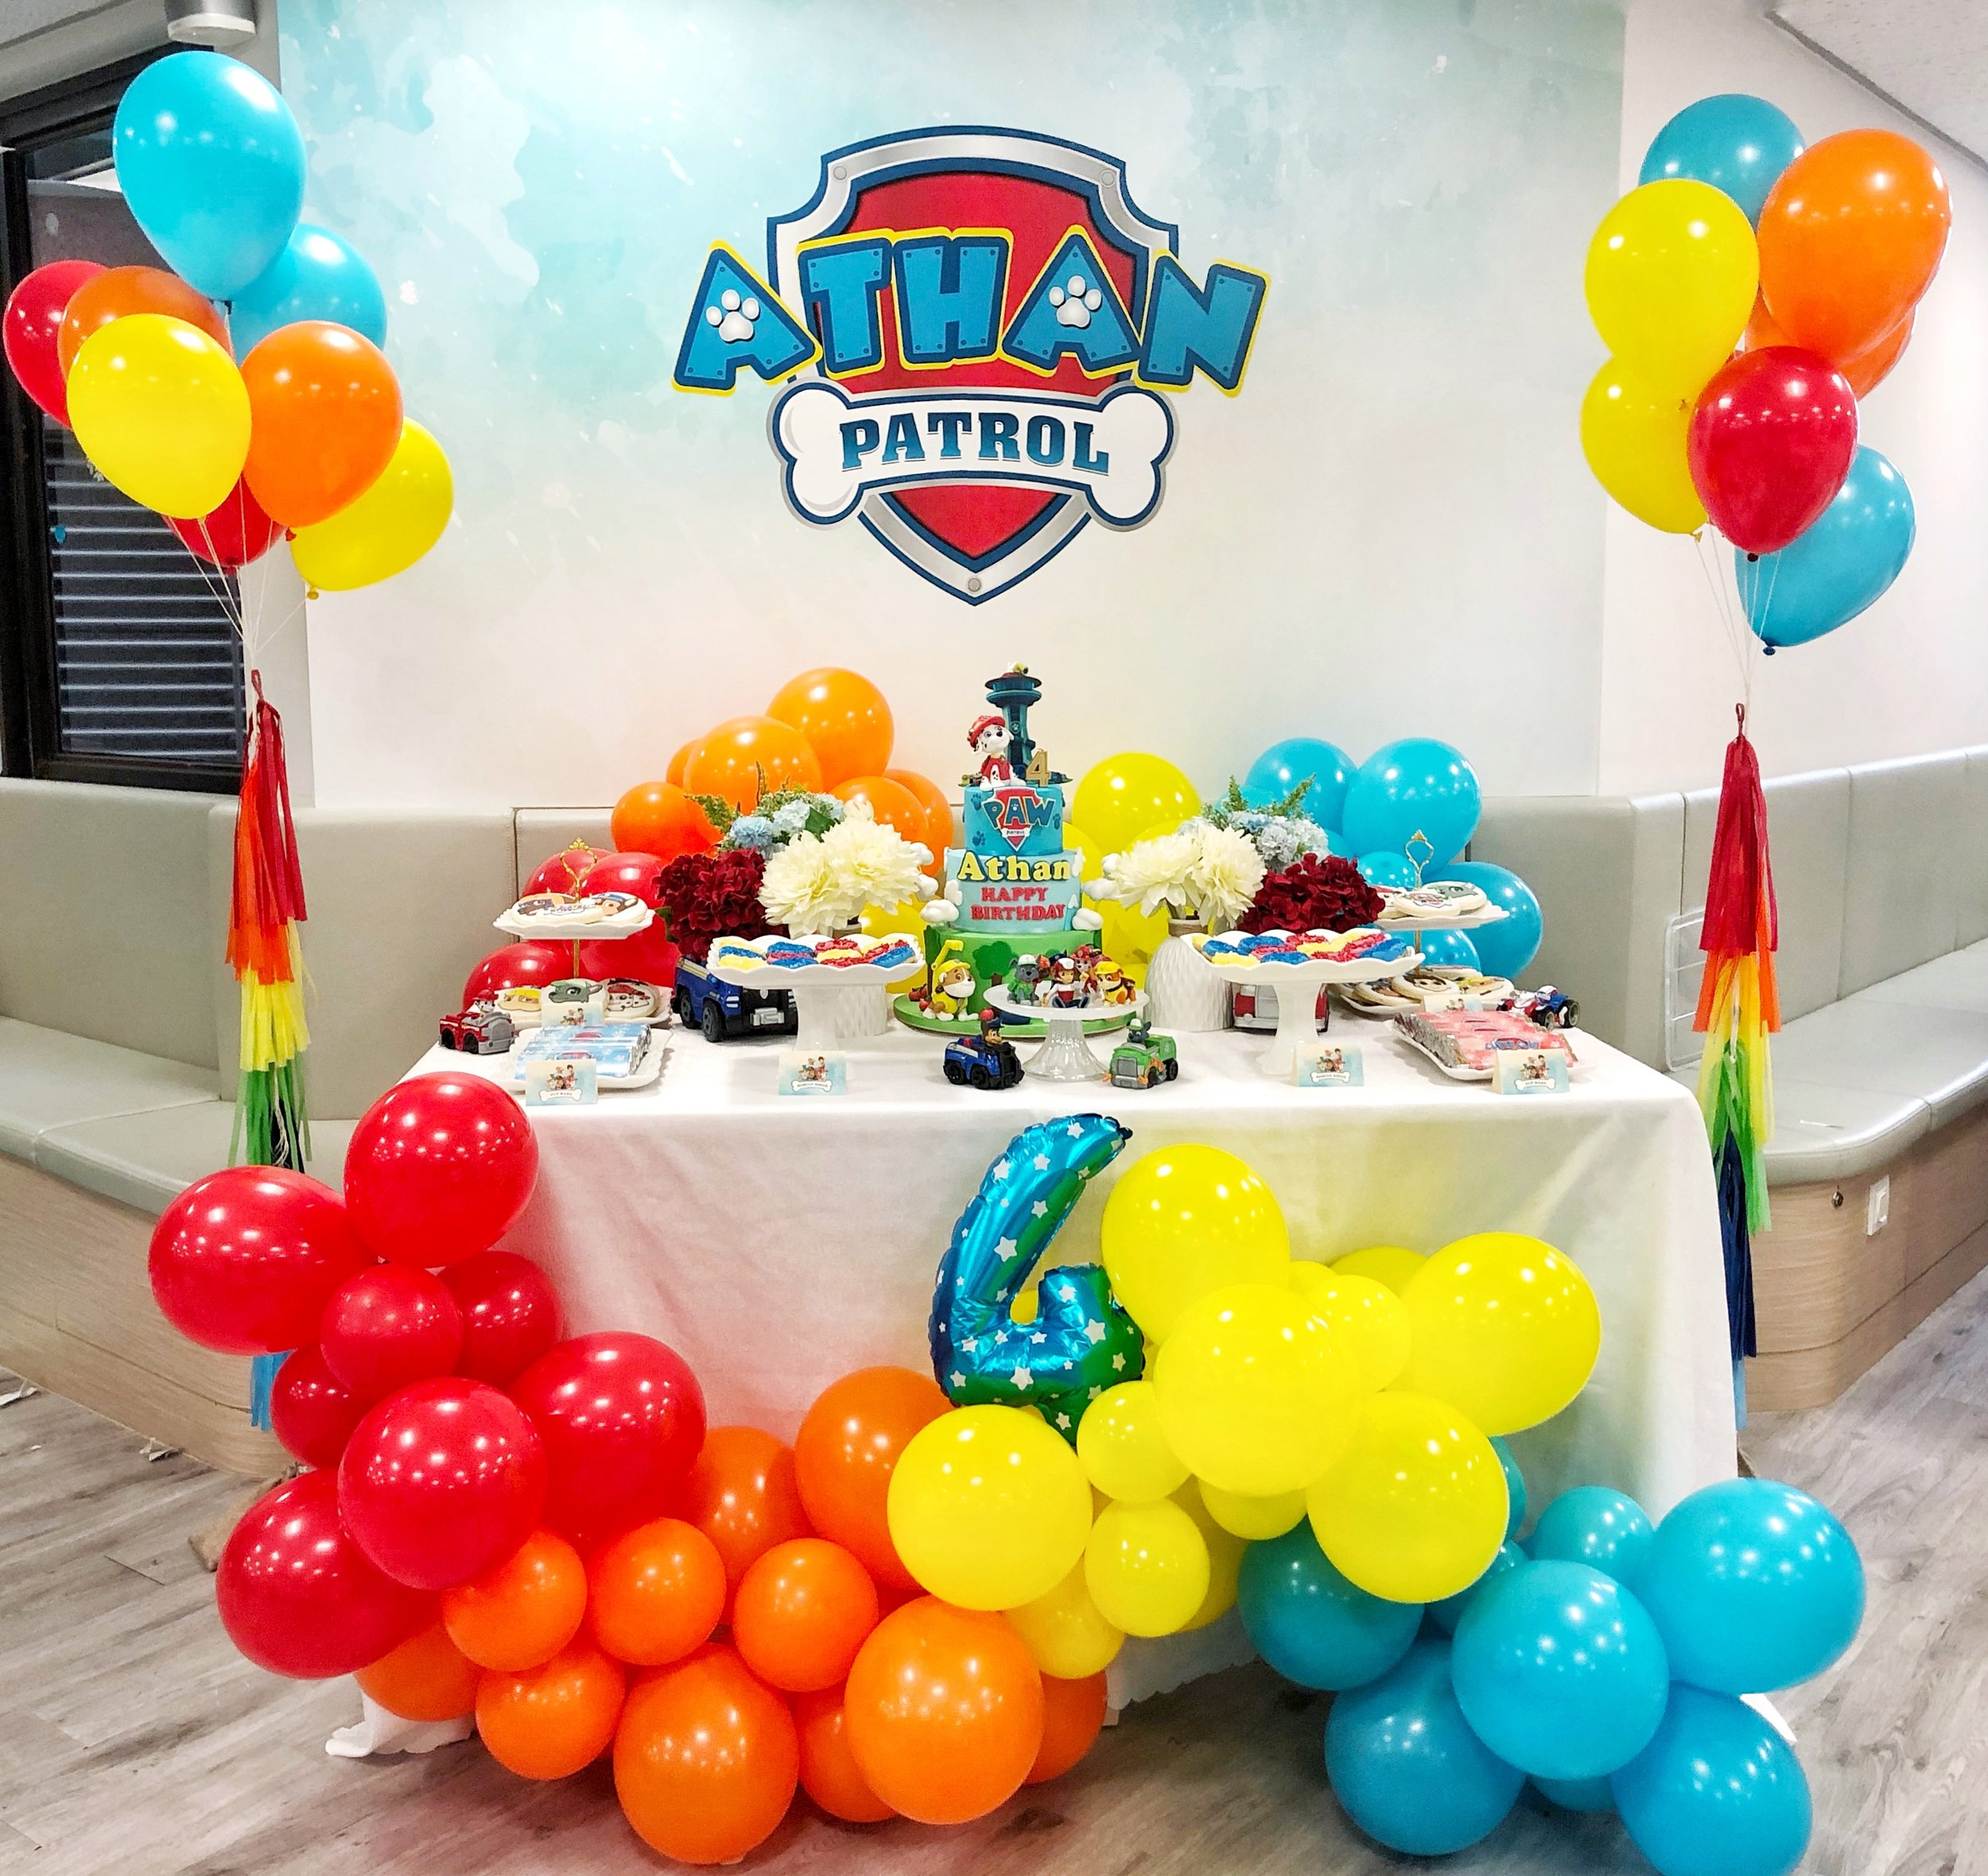 Rolling Out The Pups - Athan's Paw Patrol party had all these fun, bright colors that we wanted to anchor it down on something simple and subtle. We intentionally designed the backdrop to be lighter and to have only one focal point, the custom badge, to perfectly complement our table. The dessert table had key Paw Patrol accents such as vehicles (used as vases for our florals) and characters amidst white servingware to tone everything down. We used rainbow balloon garlands and bouquets to make this table extra special. Desserts were rainbow mini donuts, custom wrapped chocolate bars, and character cookies - all of which looked so gorgeous on the table!